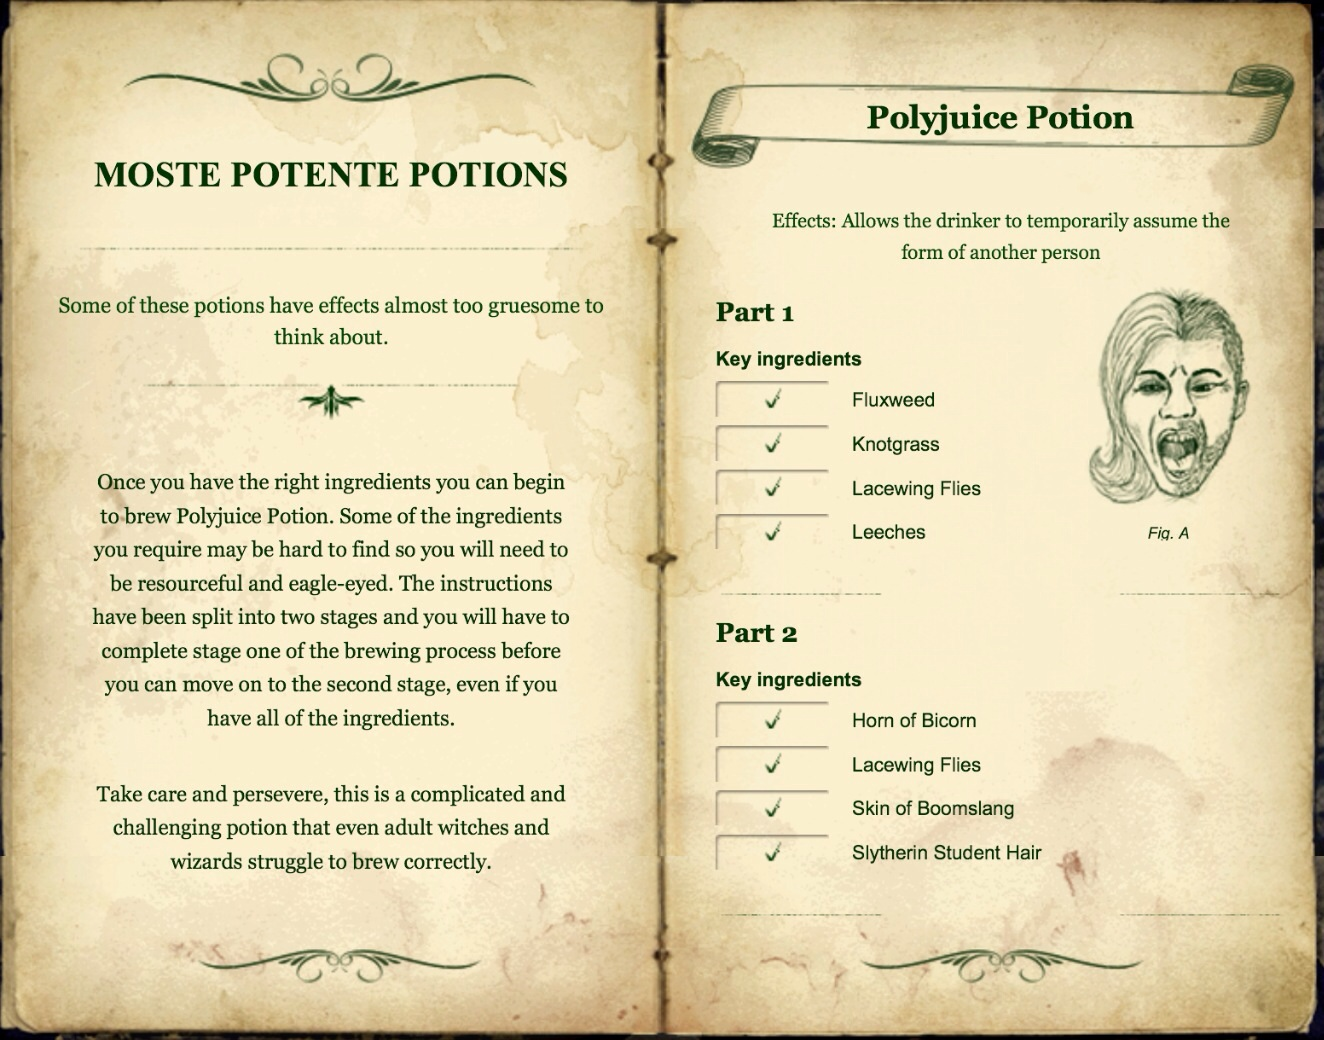 graphic regarding Harry Potter Potions Book Printable named Moste Potente Potions Pottermore Wiki FANDOM run through